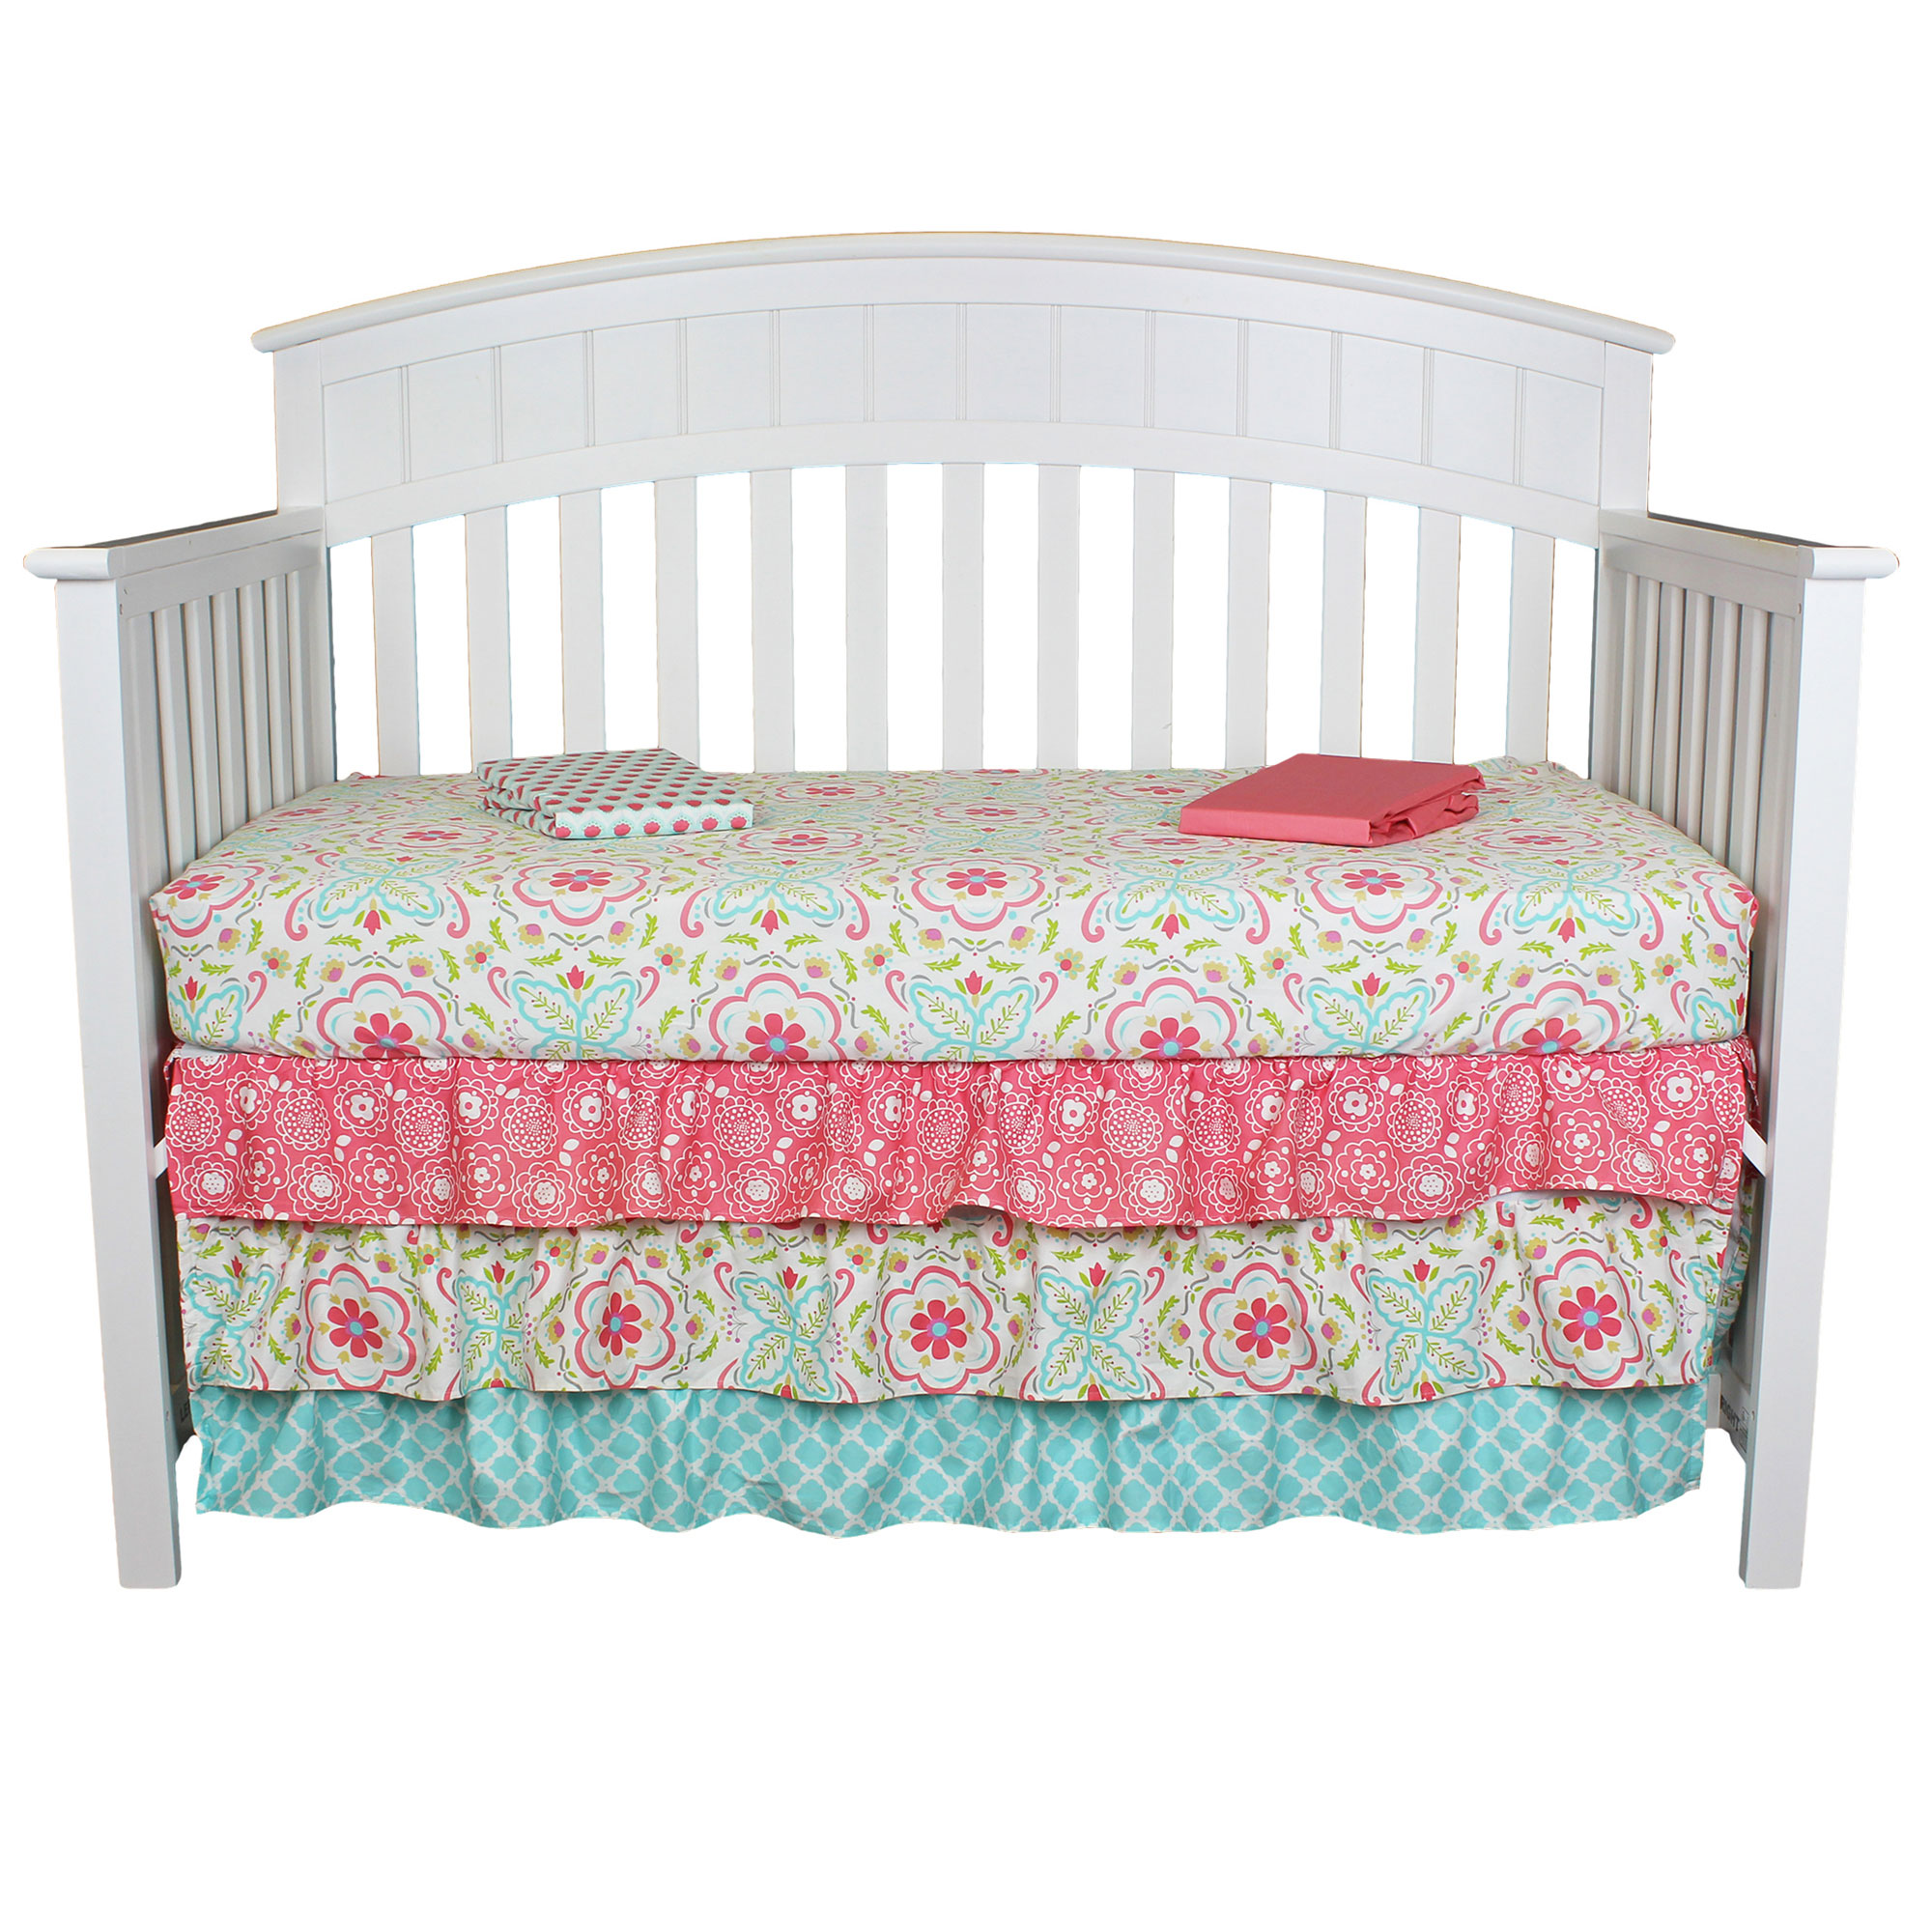 The Peanut Shell Baby Girl Crib Bedding - Gia 4 Piece Set - Skirt and 3 Sheets